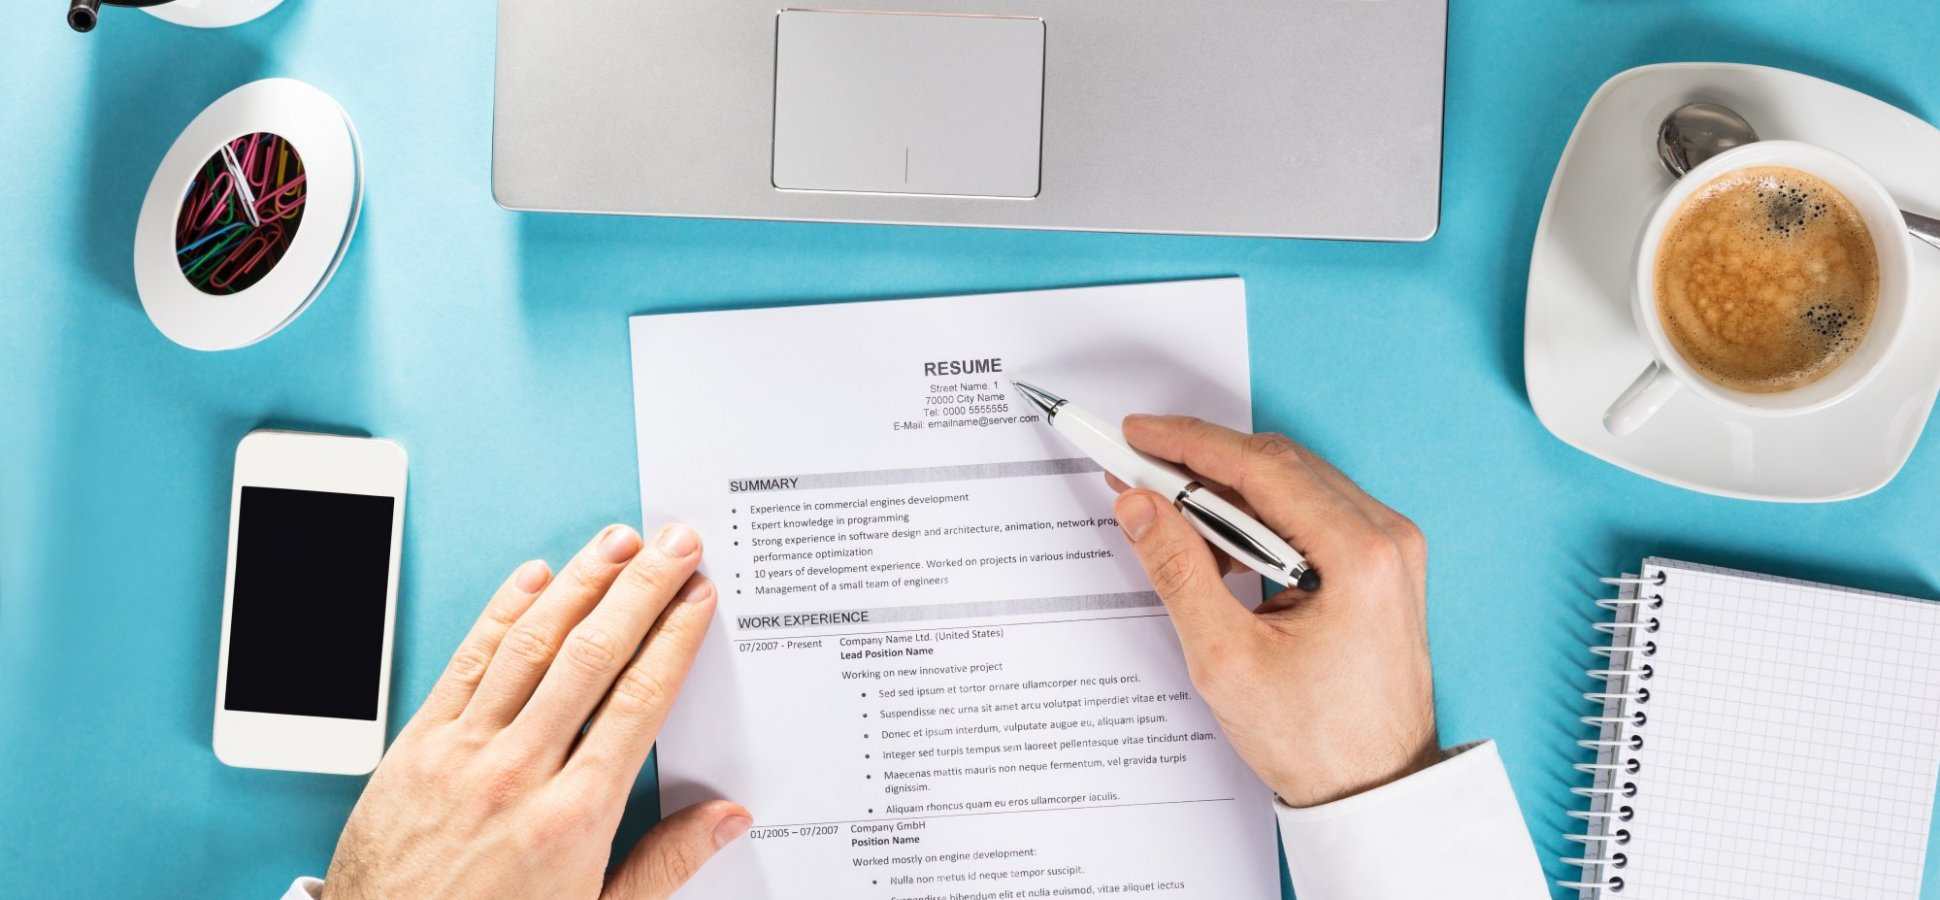 Here's Why Every Resume Needs a Tech Section in 2018 (Even if You